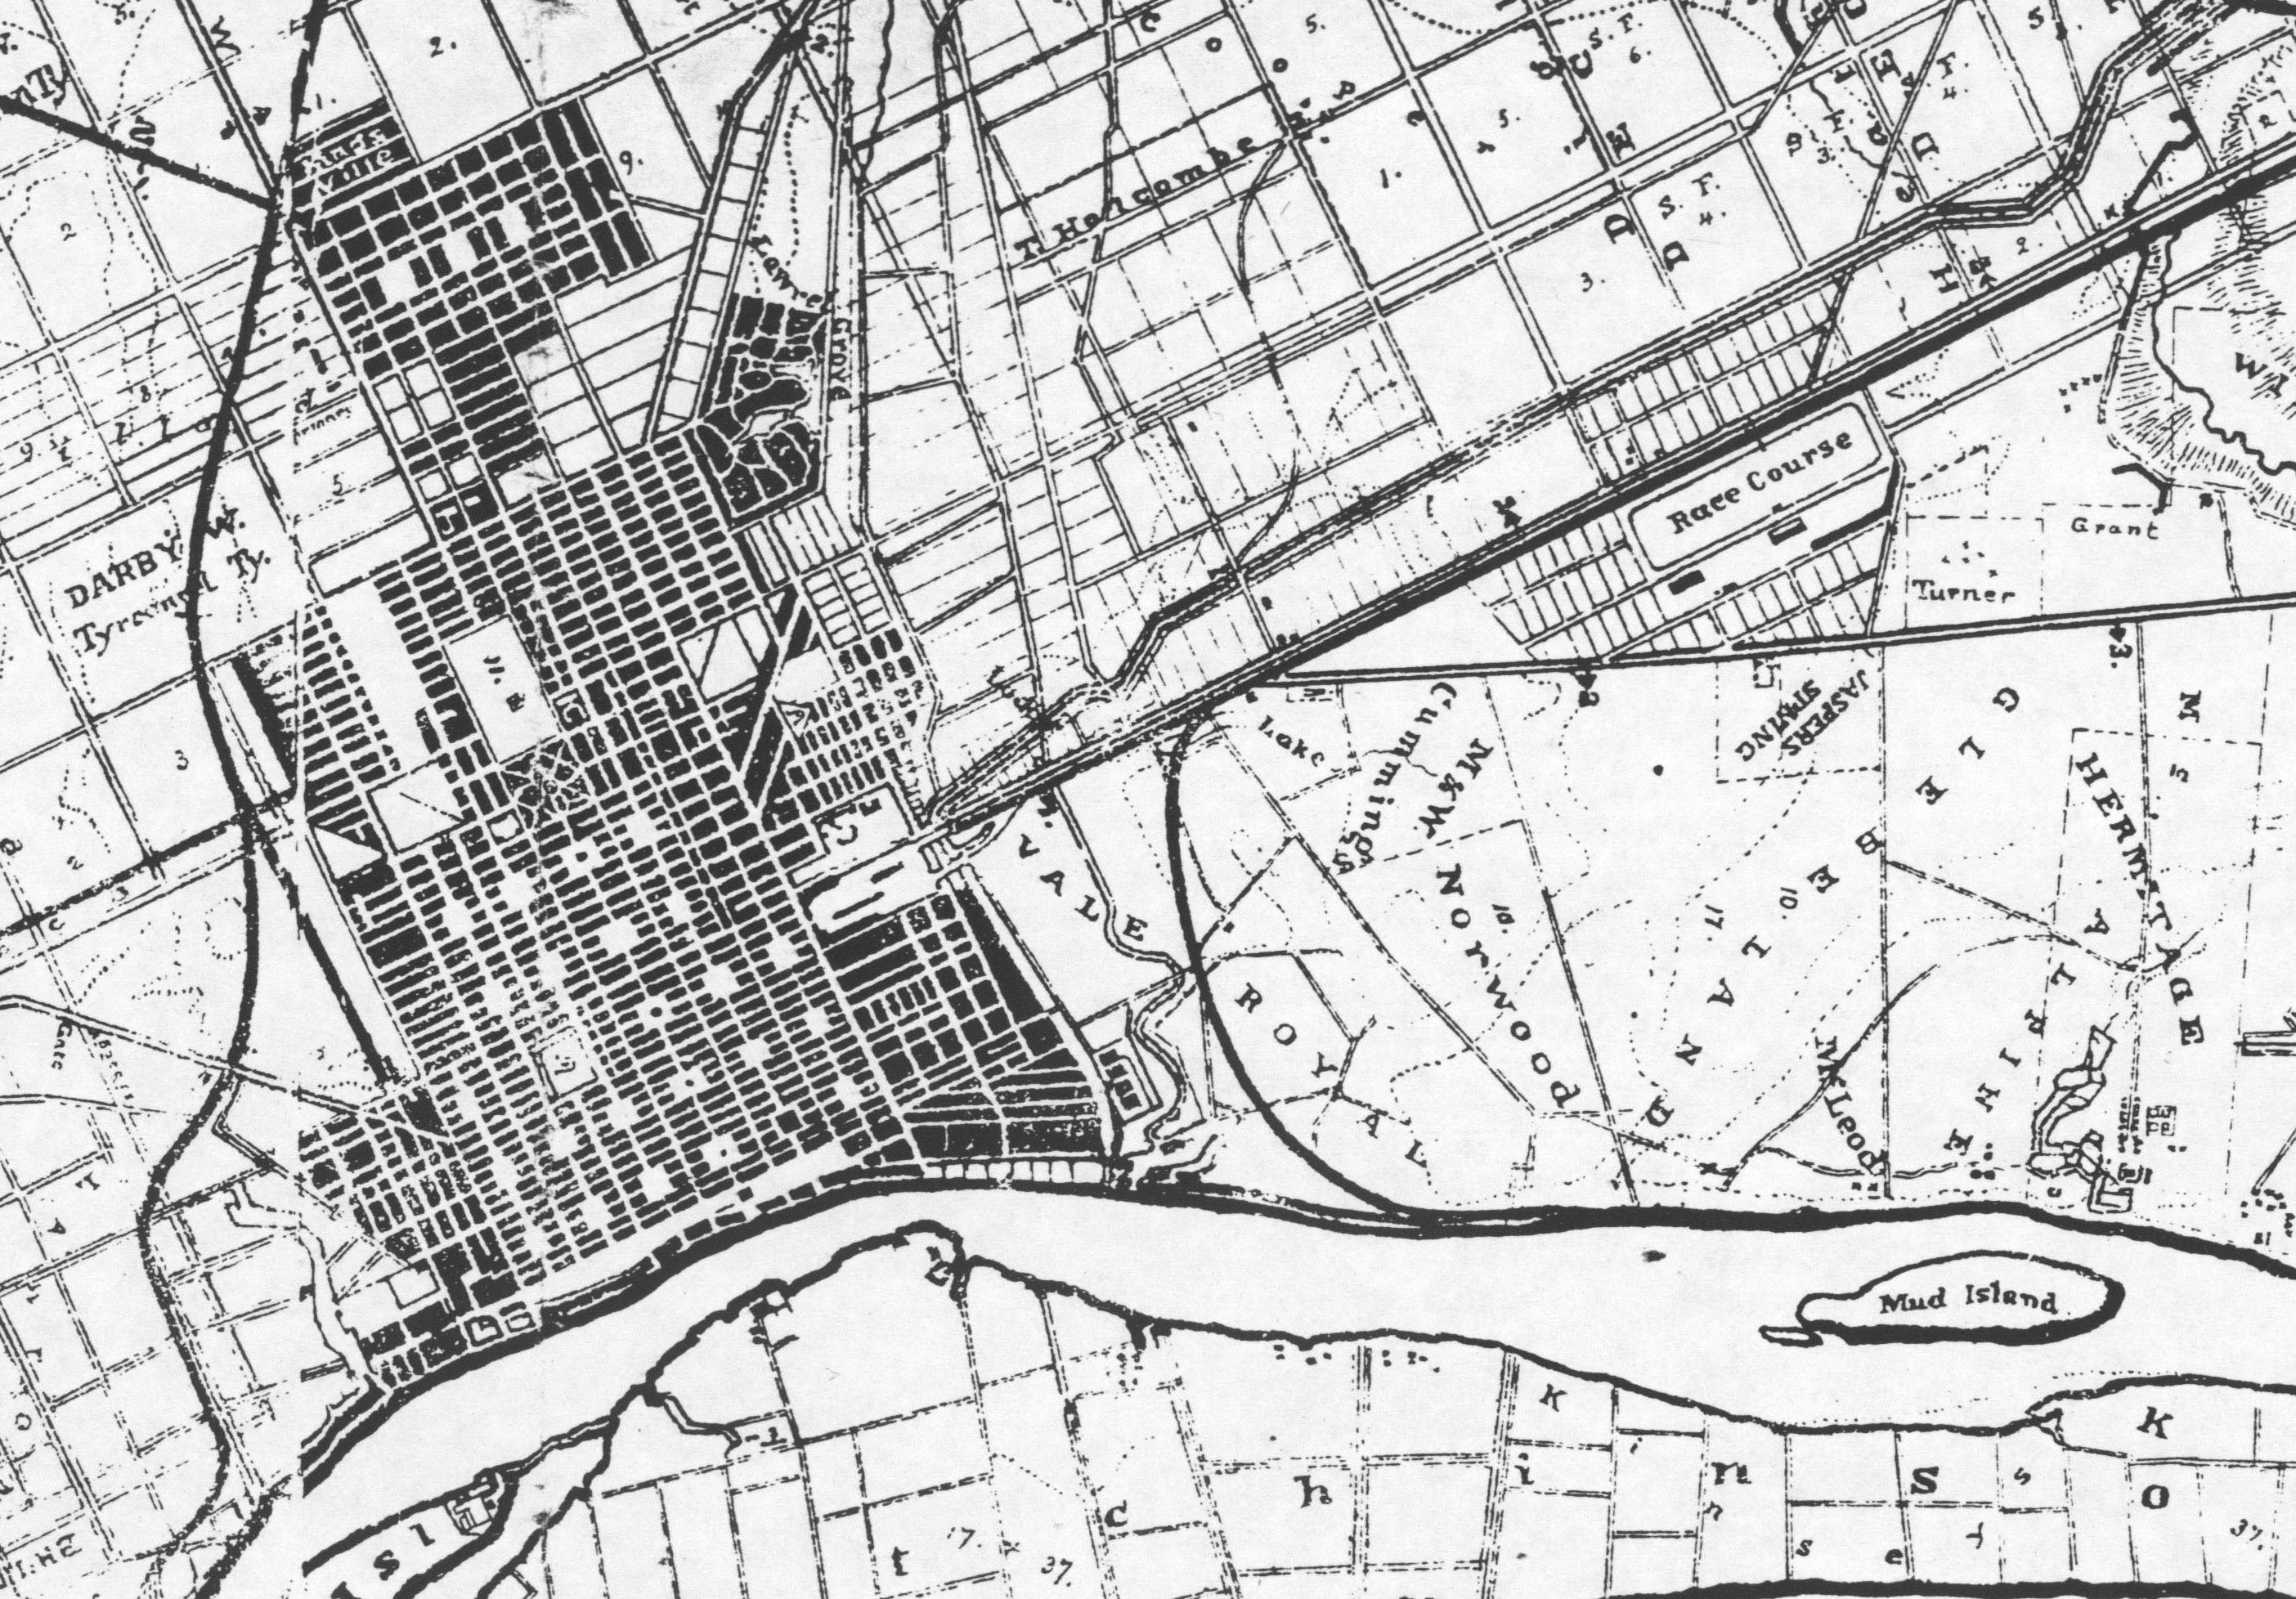 Detail of Platen map (1872) of Savannah, showing location of Ten Broeck Race Course, upper right. Image: Georgia Historical Society